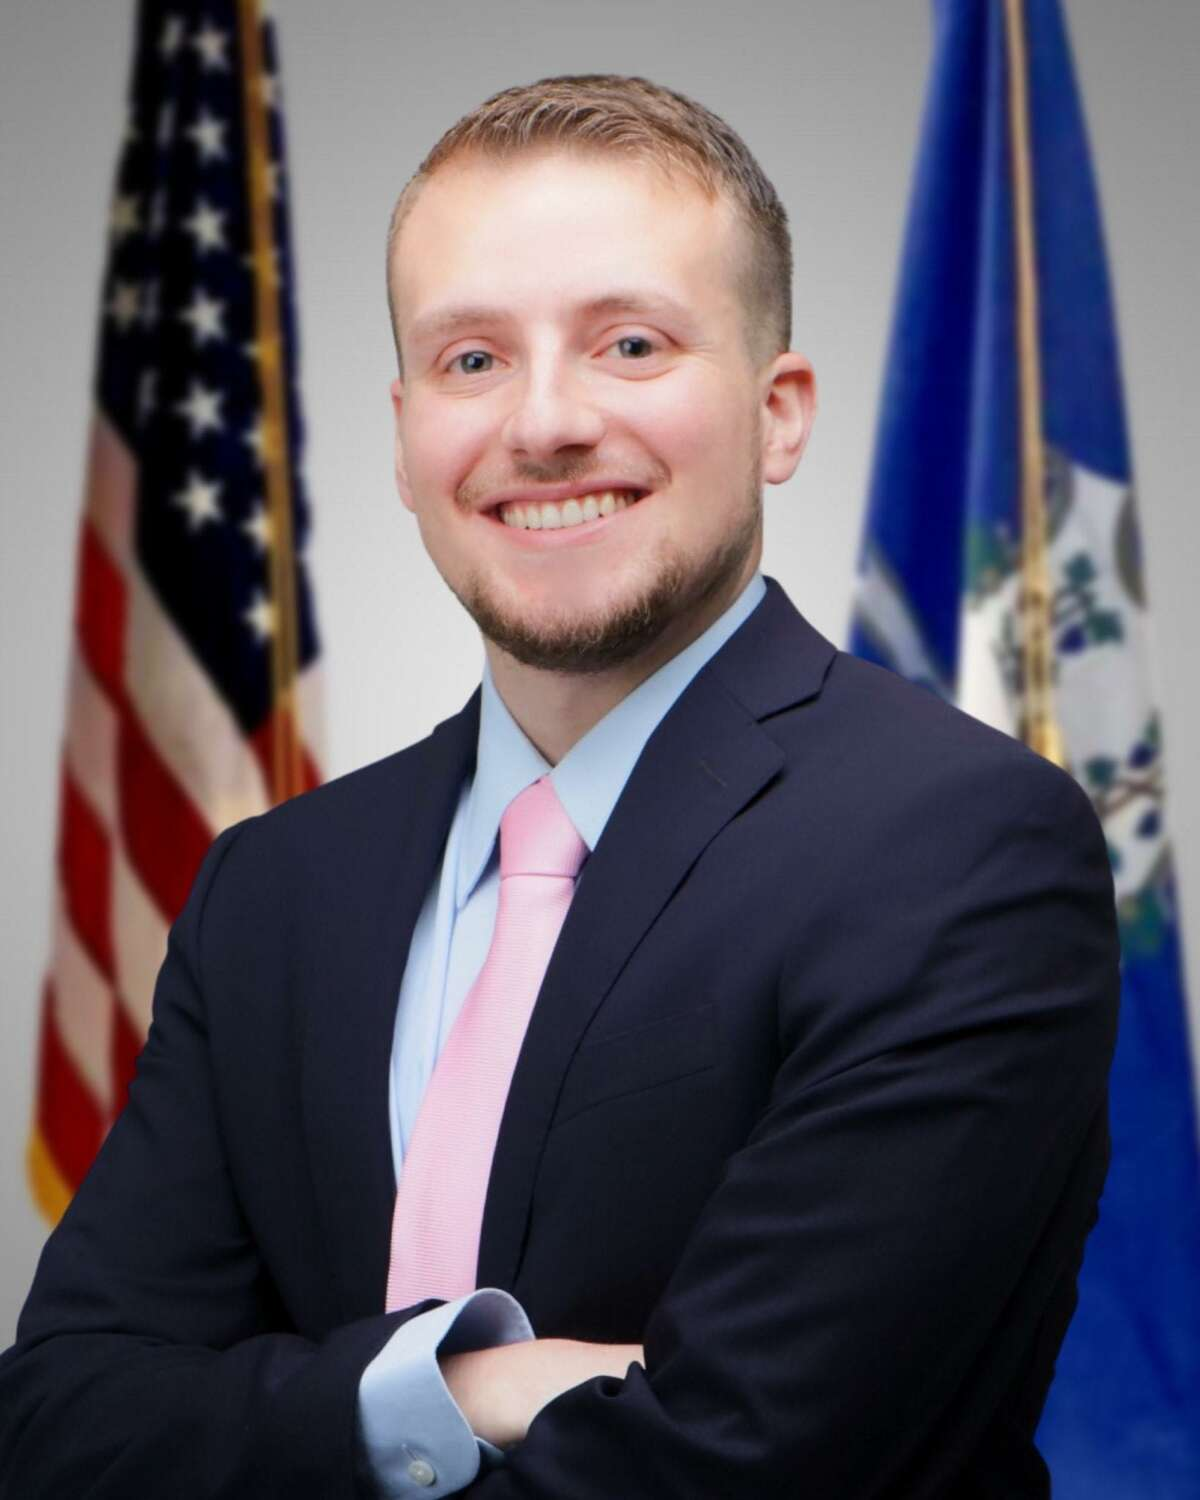 Anthony DiLizia, a gay U.S. Army veteran, is launching a longshot bid to unseat U.S. Rep. Joe Courtney for the Democratic nomination in Connecticut's 2nd Congressional District.